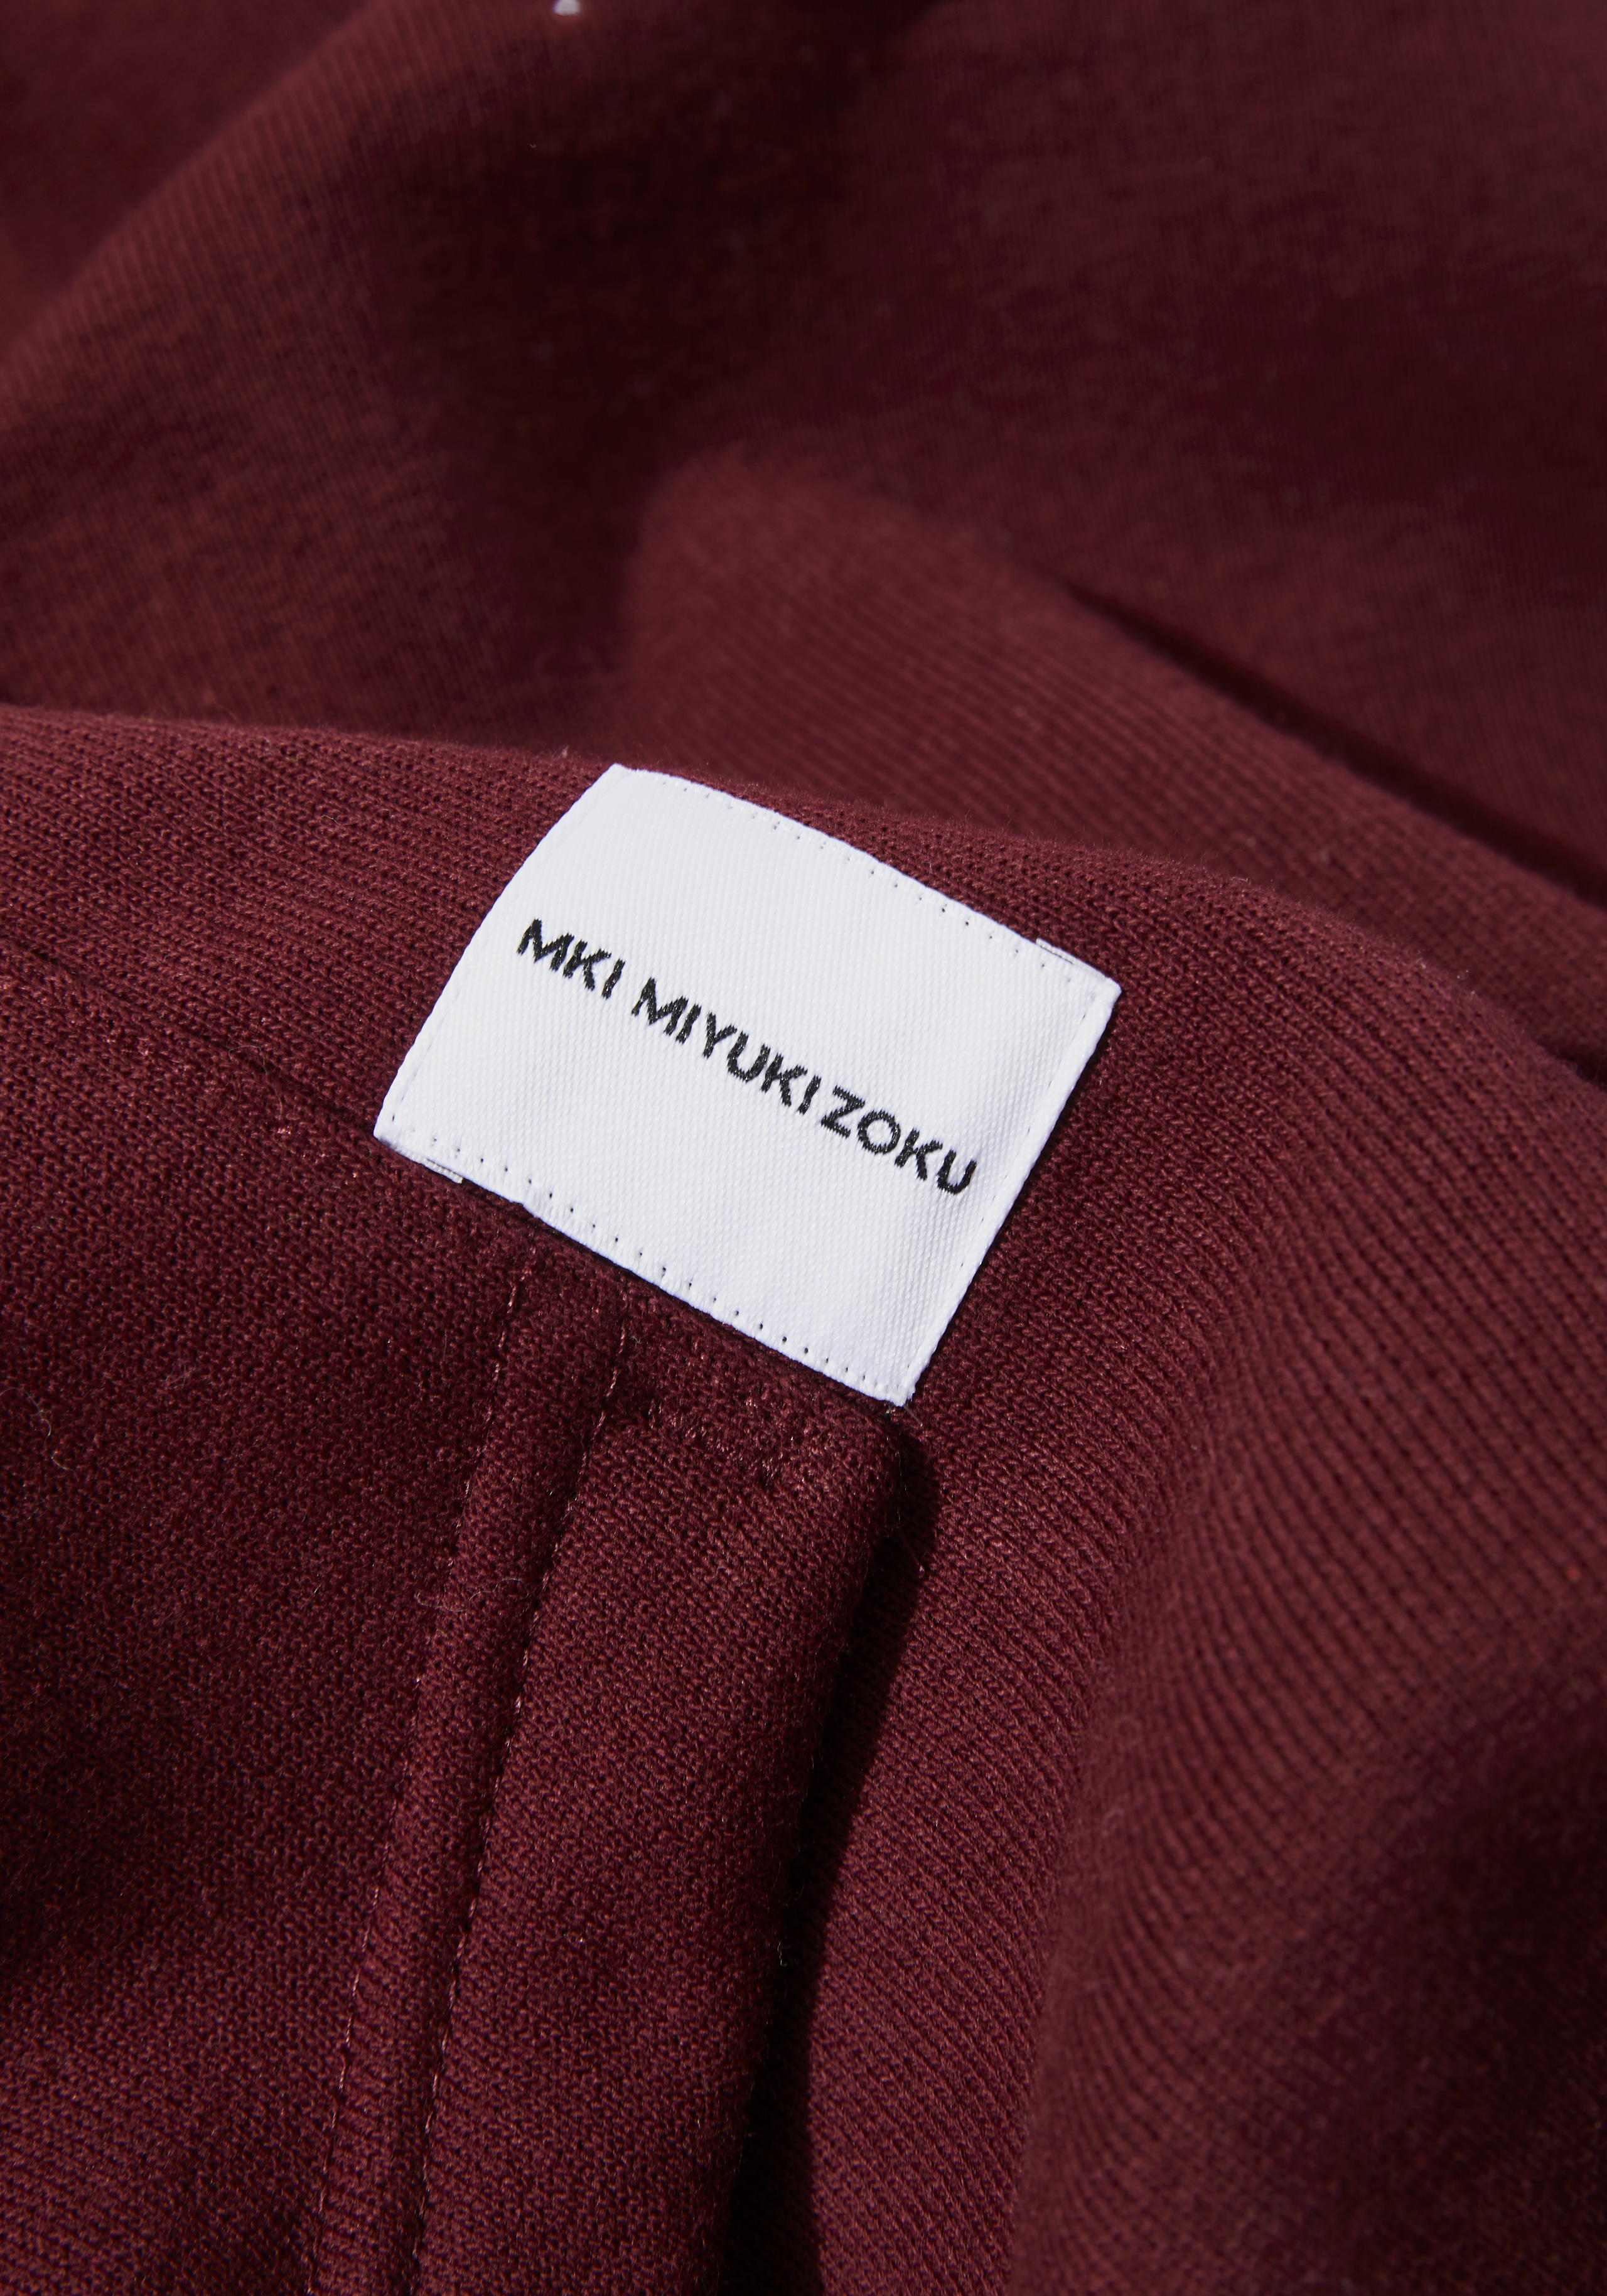 mki 12oz hoody made in usa 5